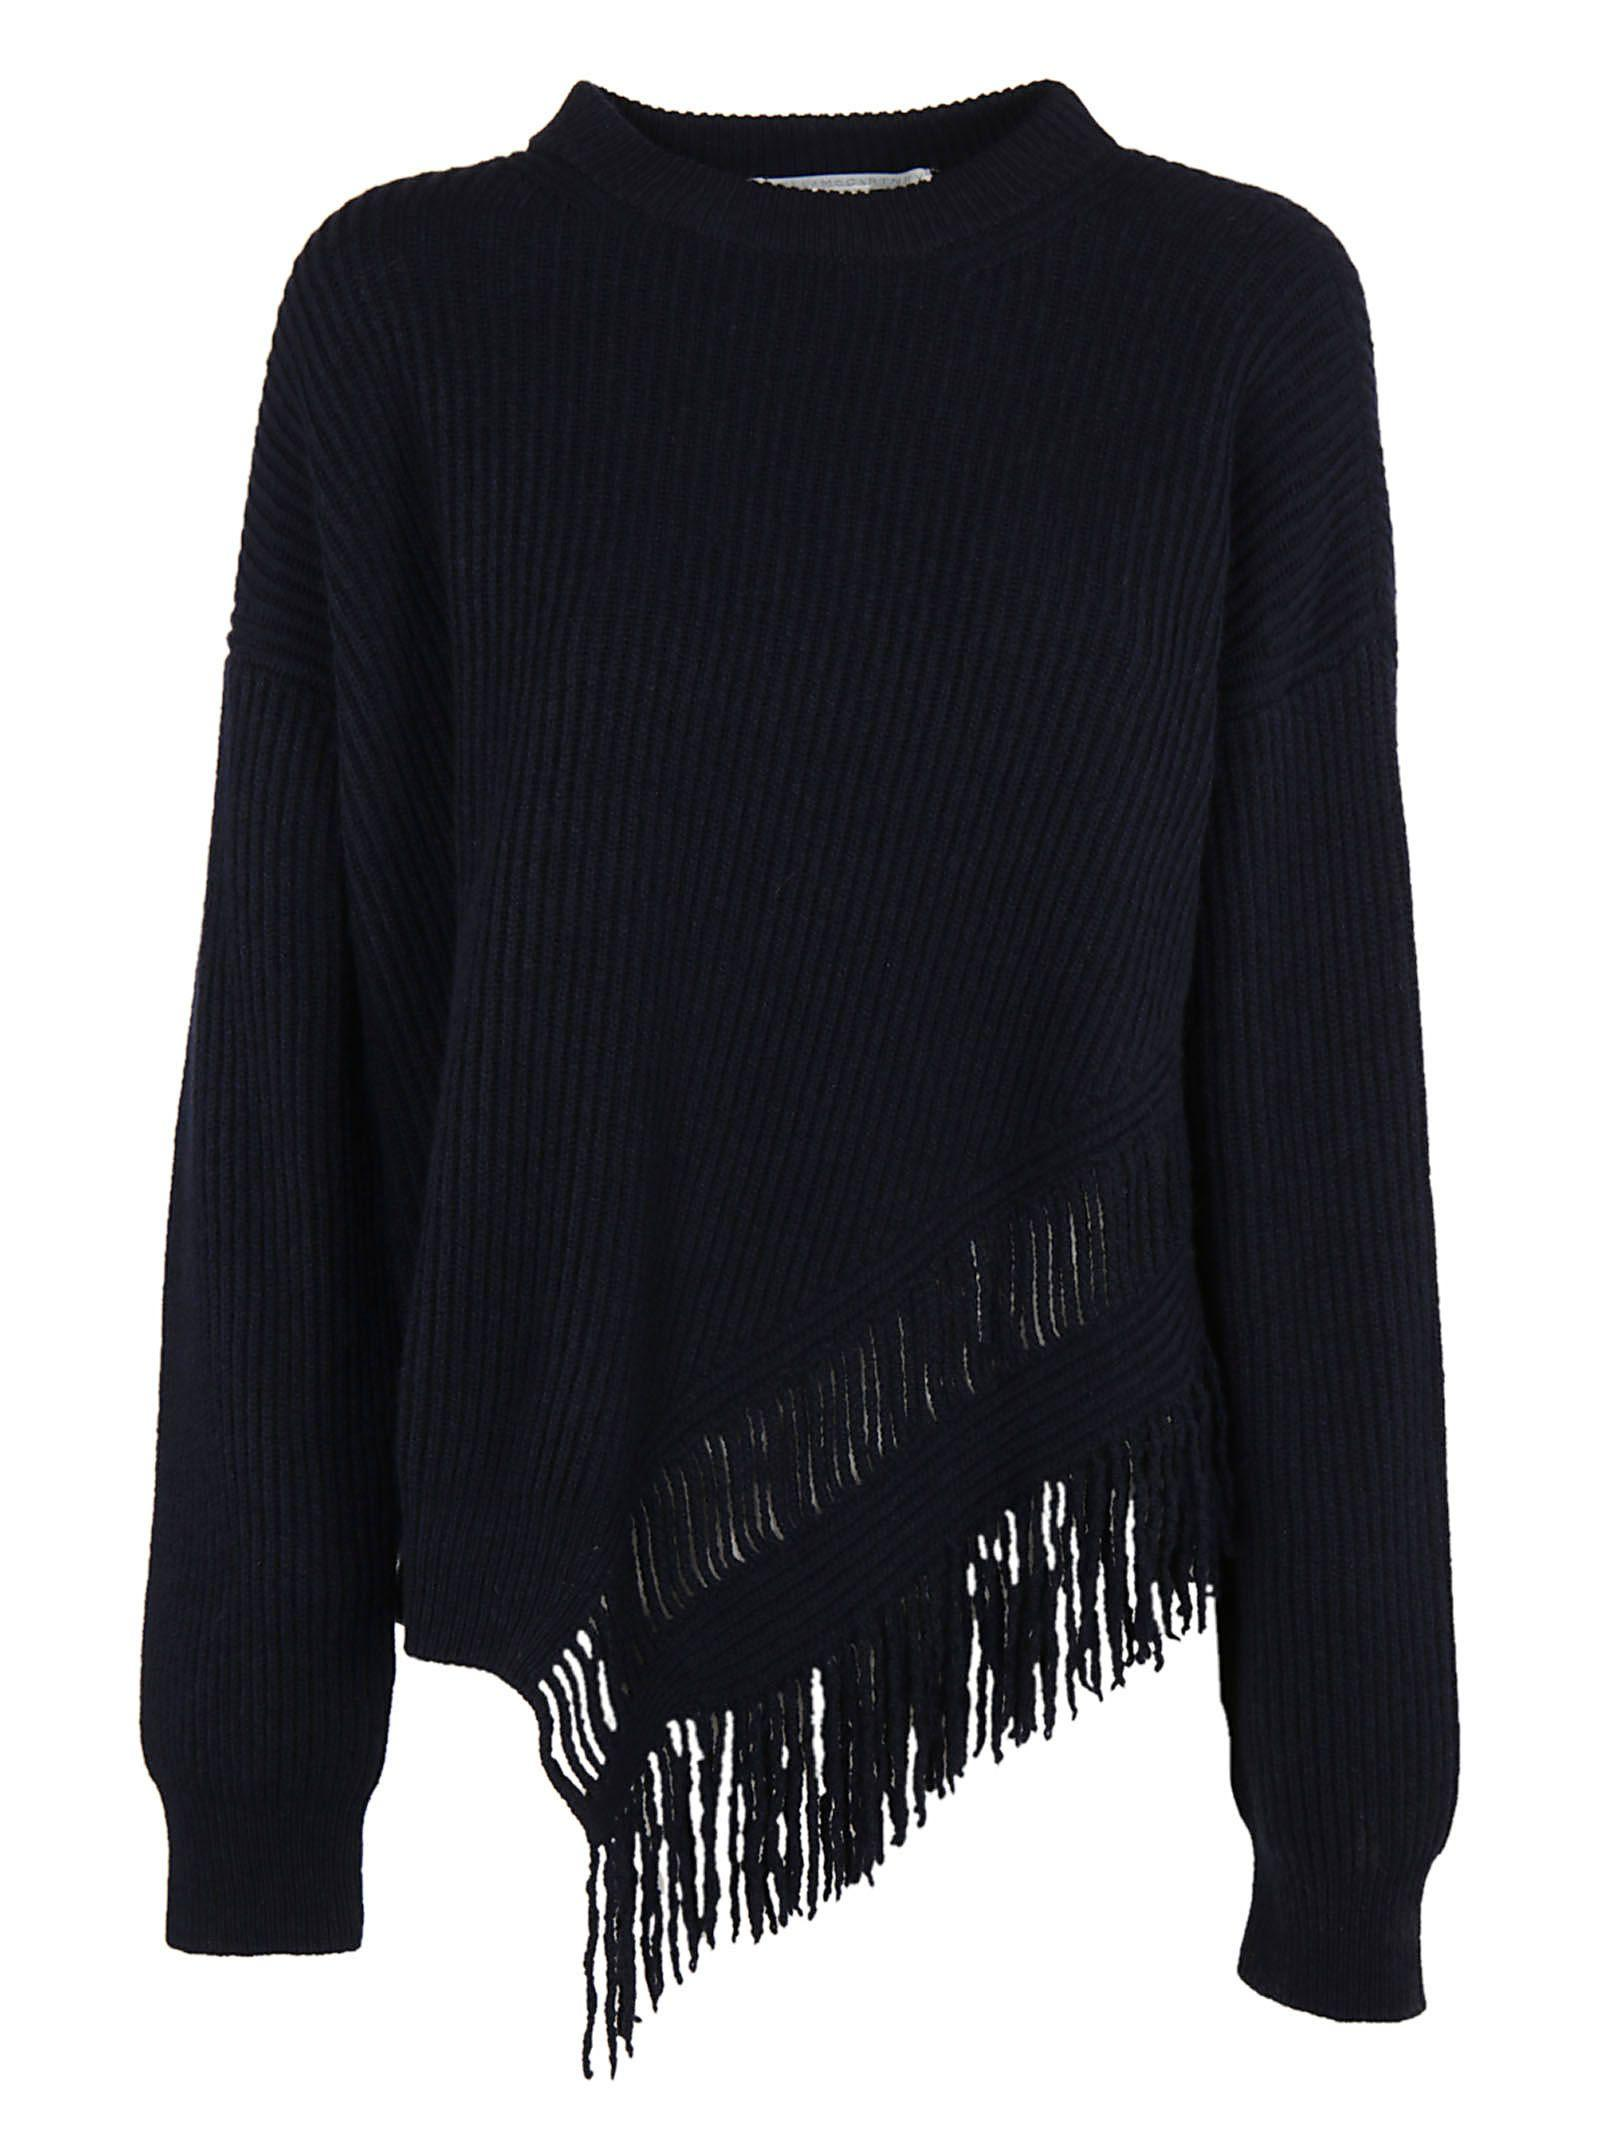 Stella Mccartney Knit Fringed Top In Black